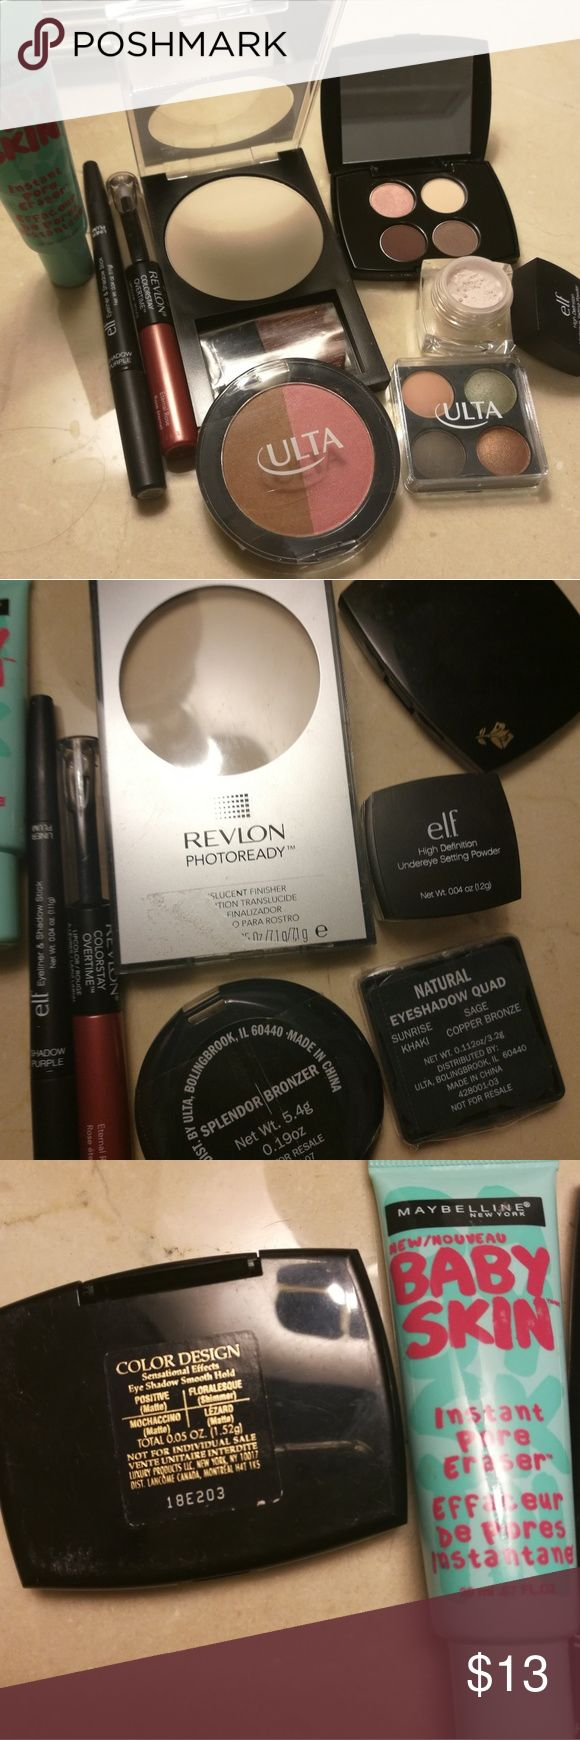 Summer sale! Makeup bundle. FINAL PRICE! Revlon photoready translucent finisher, Lancome eye shadow quad, Maybelline baby skin, elf under eye setting powder, elf shadow and liner stick in purple, Revlon colorstay lip in eternal rose, ulta bronzer/blush duo, ulta eyeshadow quad. Most were used/swatched once except for 2 ulta products never used. Makeup